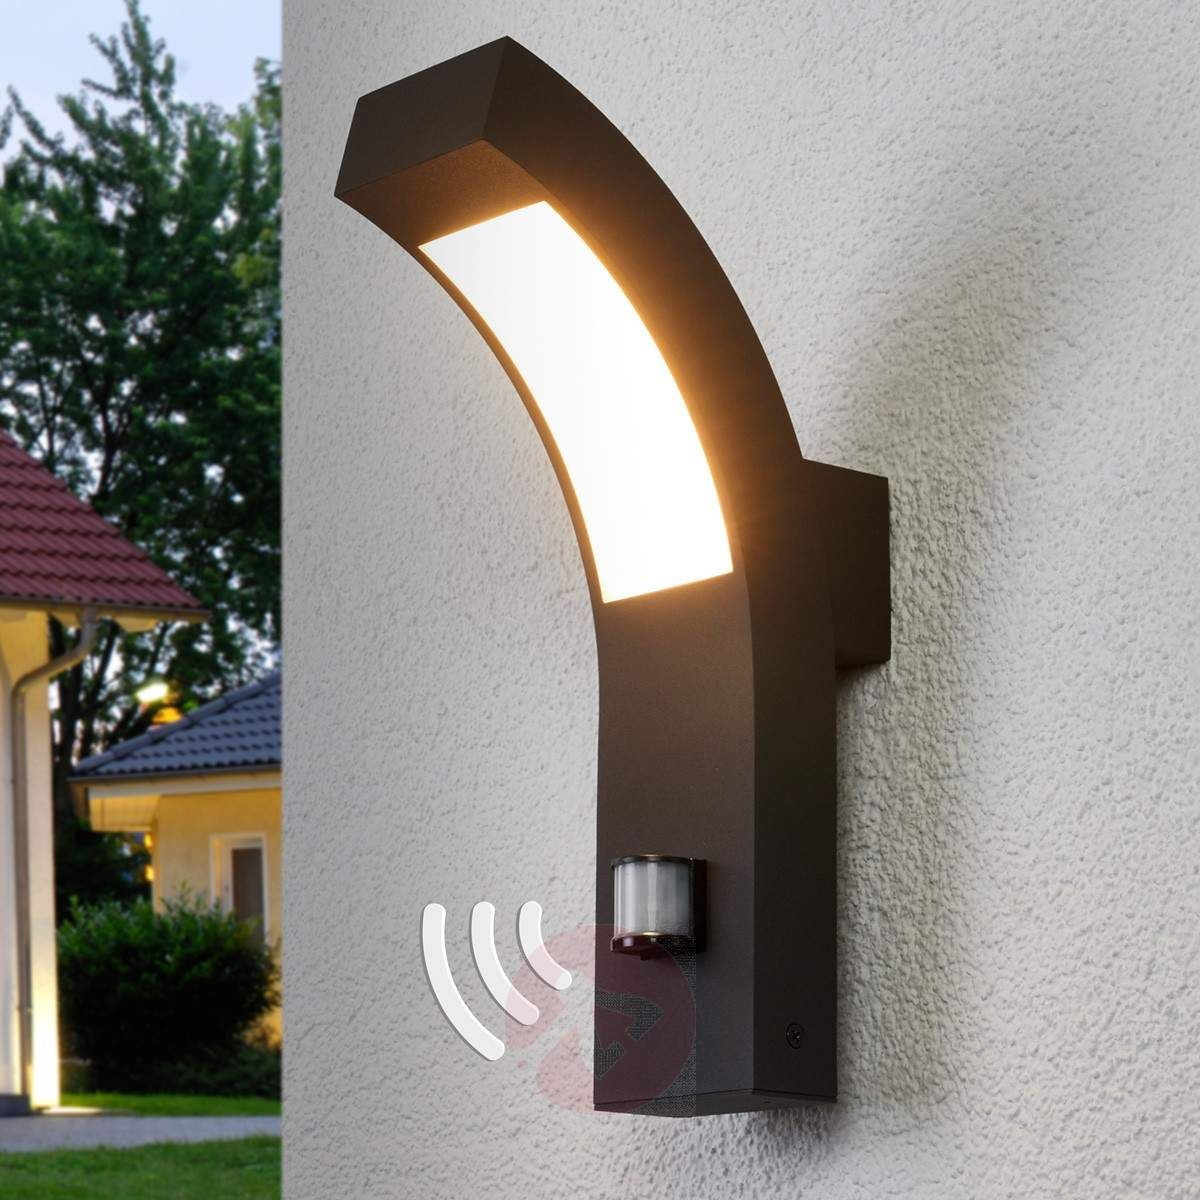 Lennik LED Exterior Wall Lamp With Motion Detector 9619007 332